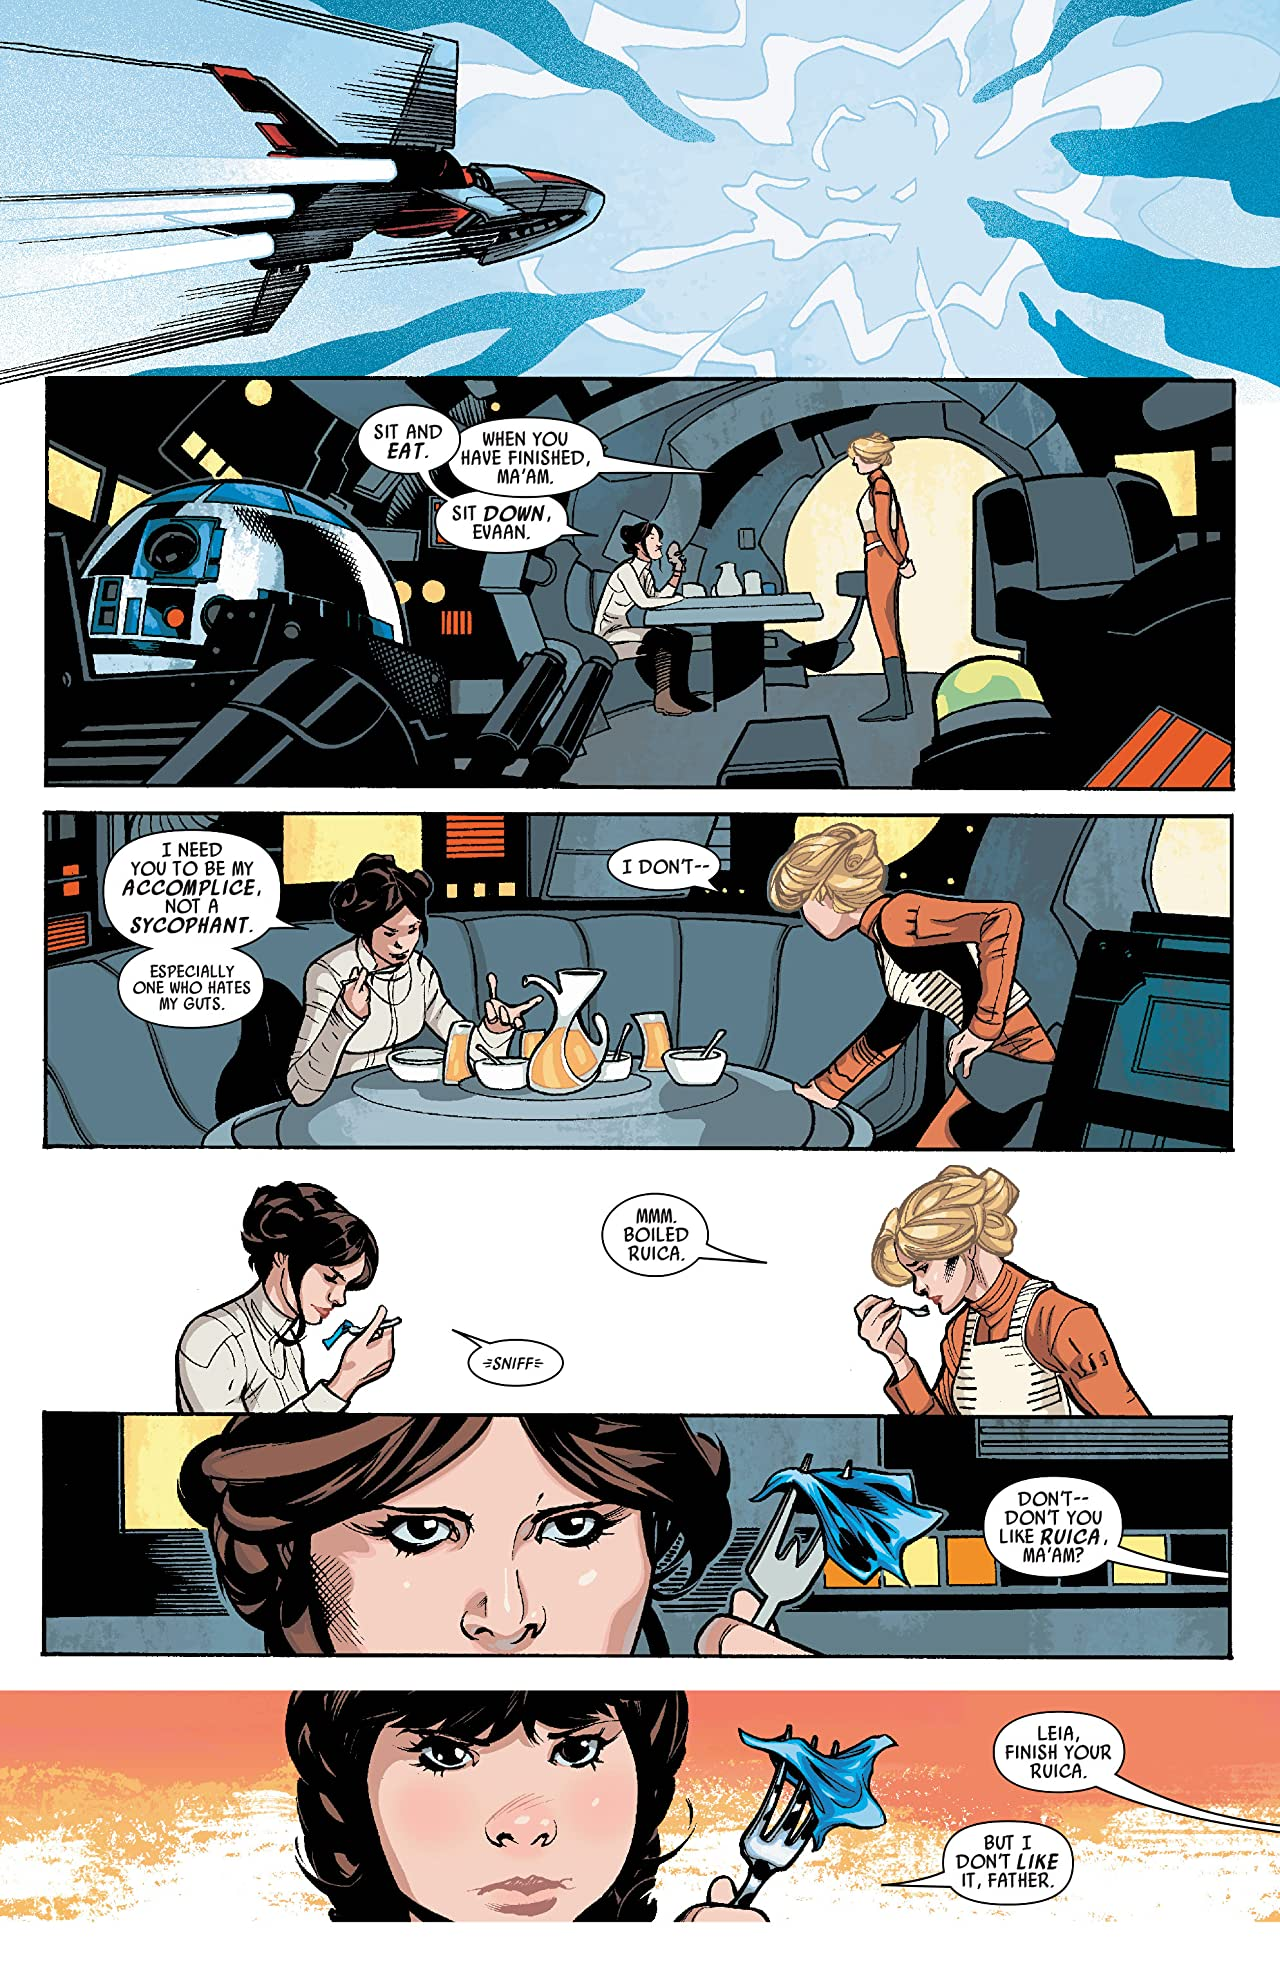 Princess Leia (2015) #2 (of 5)